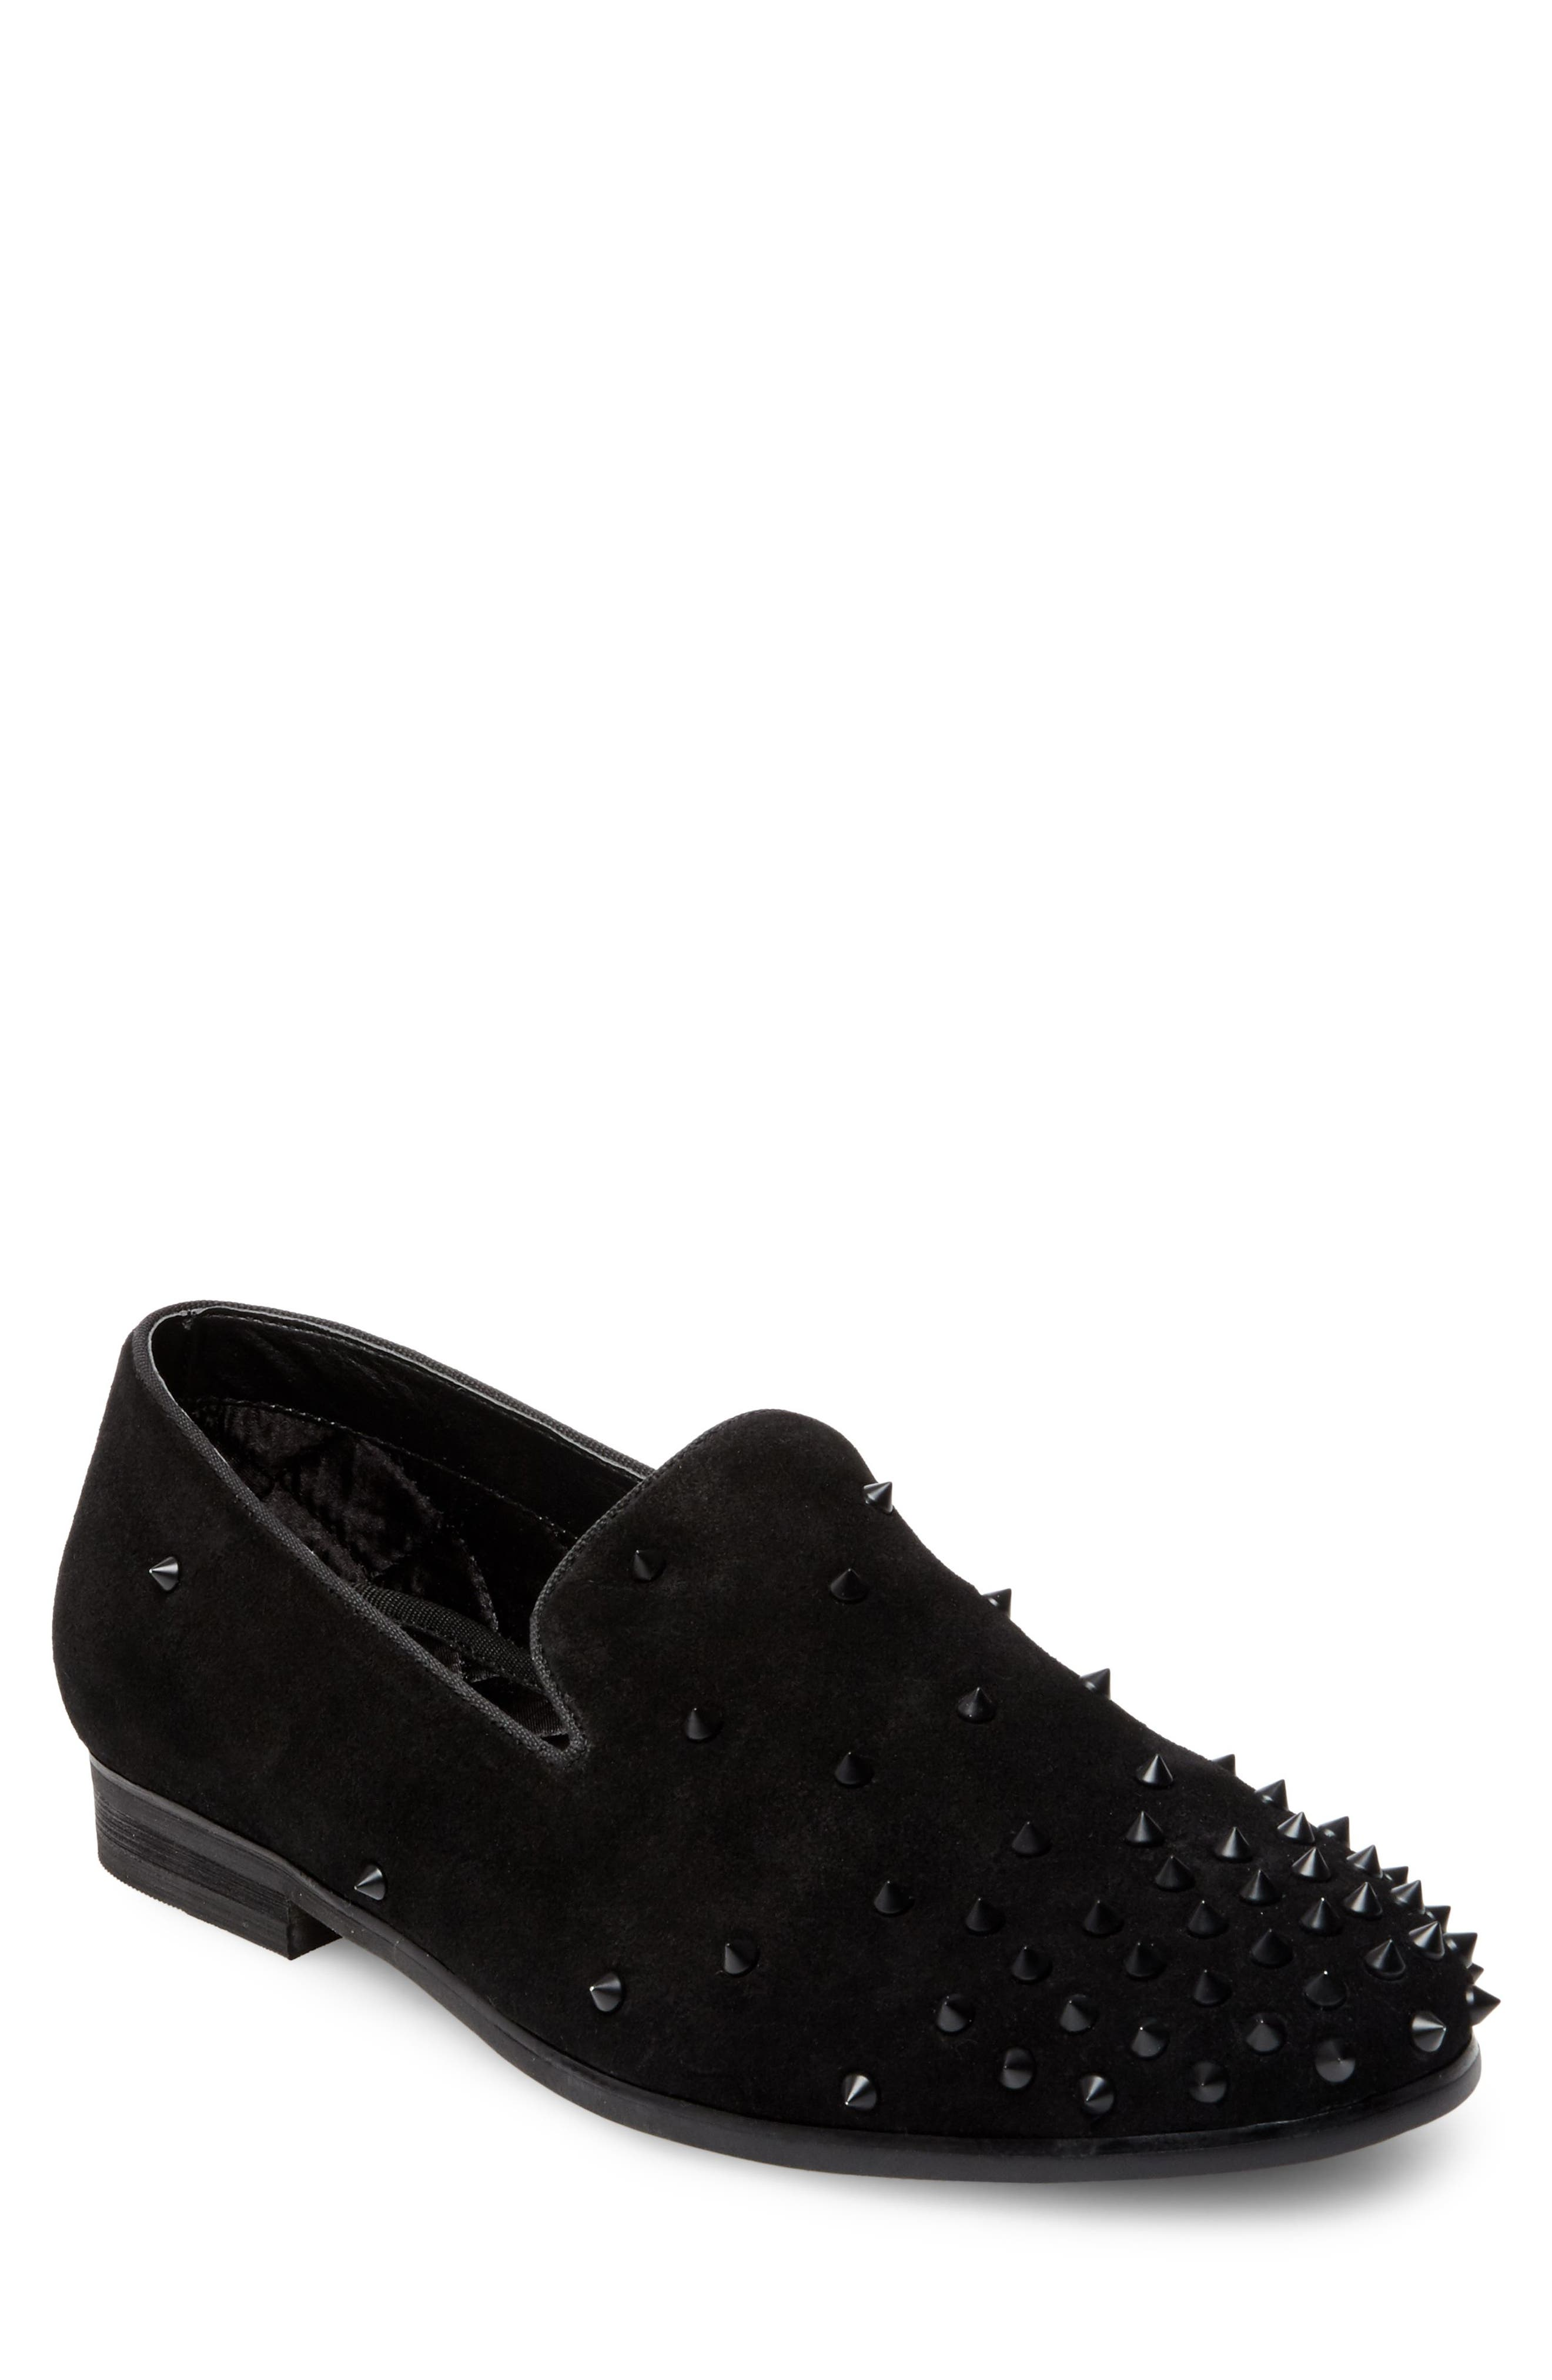 Cascade Studded Loafer,                             Main thumbnail 1, color,                             Black Suede